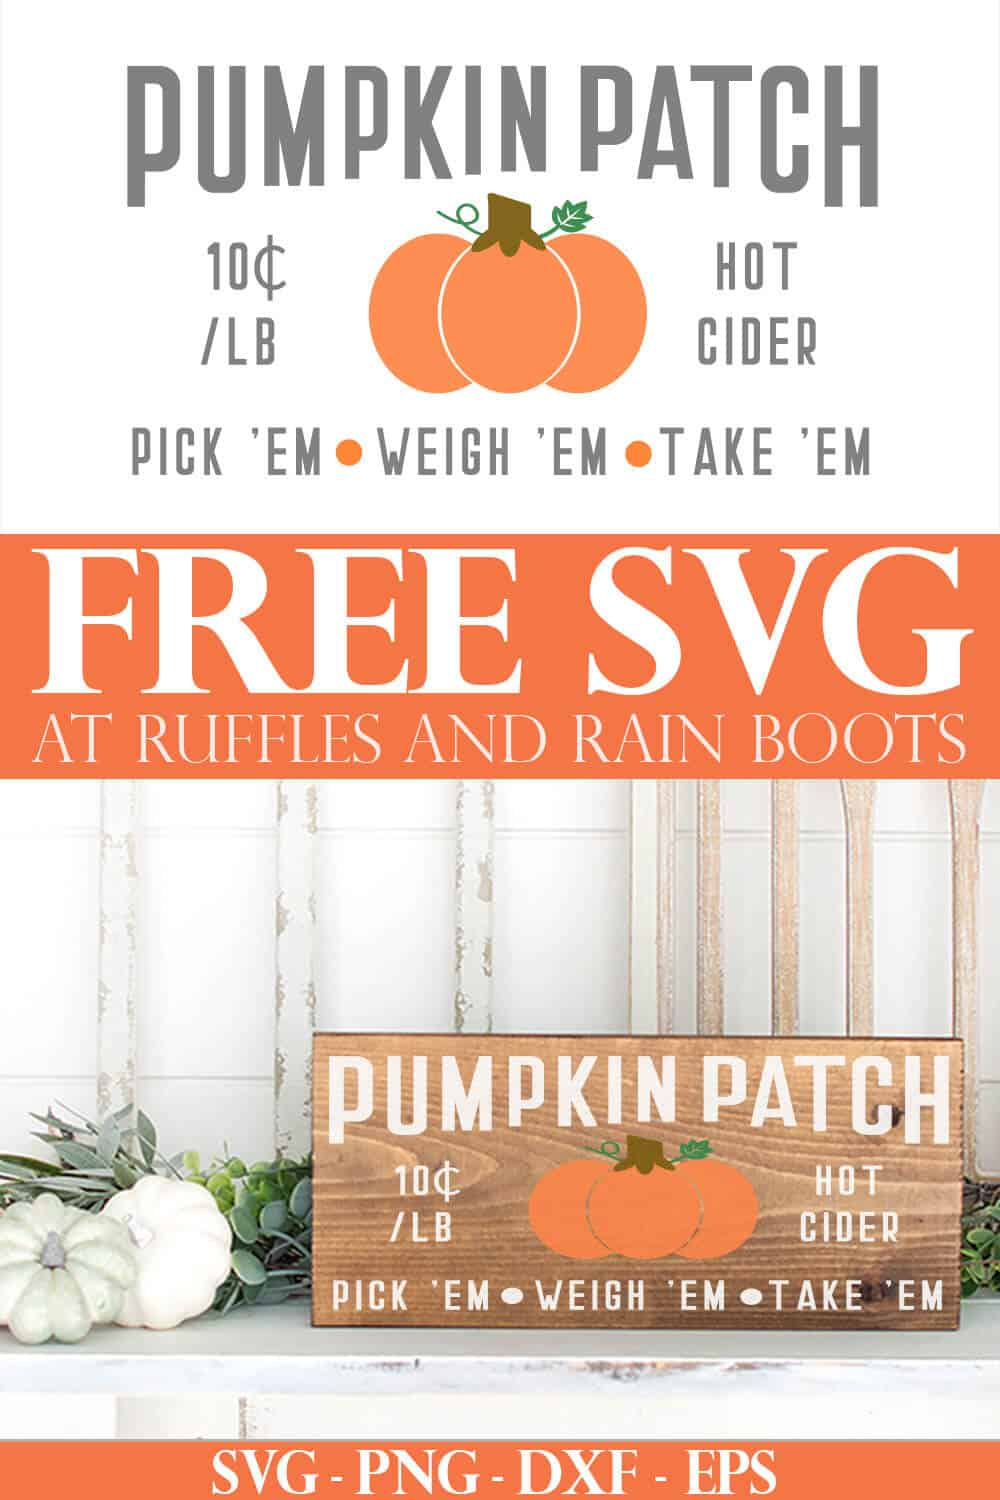 crowned pumpkin patch sign svg on wood plank on mantle with text which reads free svg at ruffles and rain boots